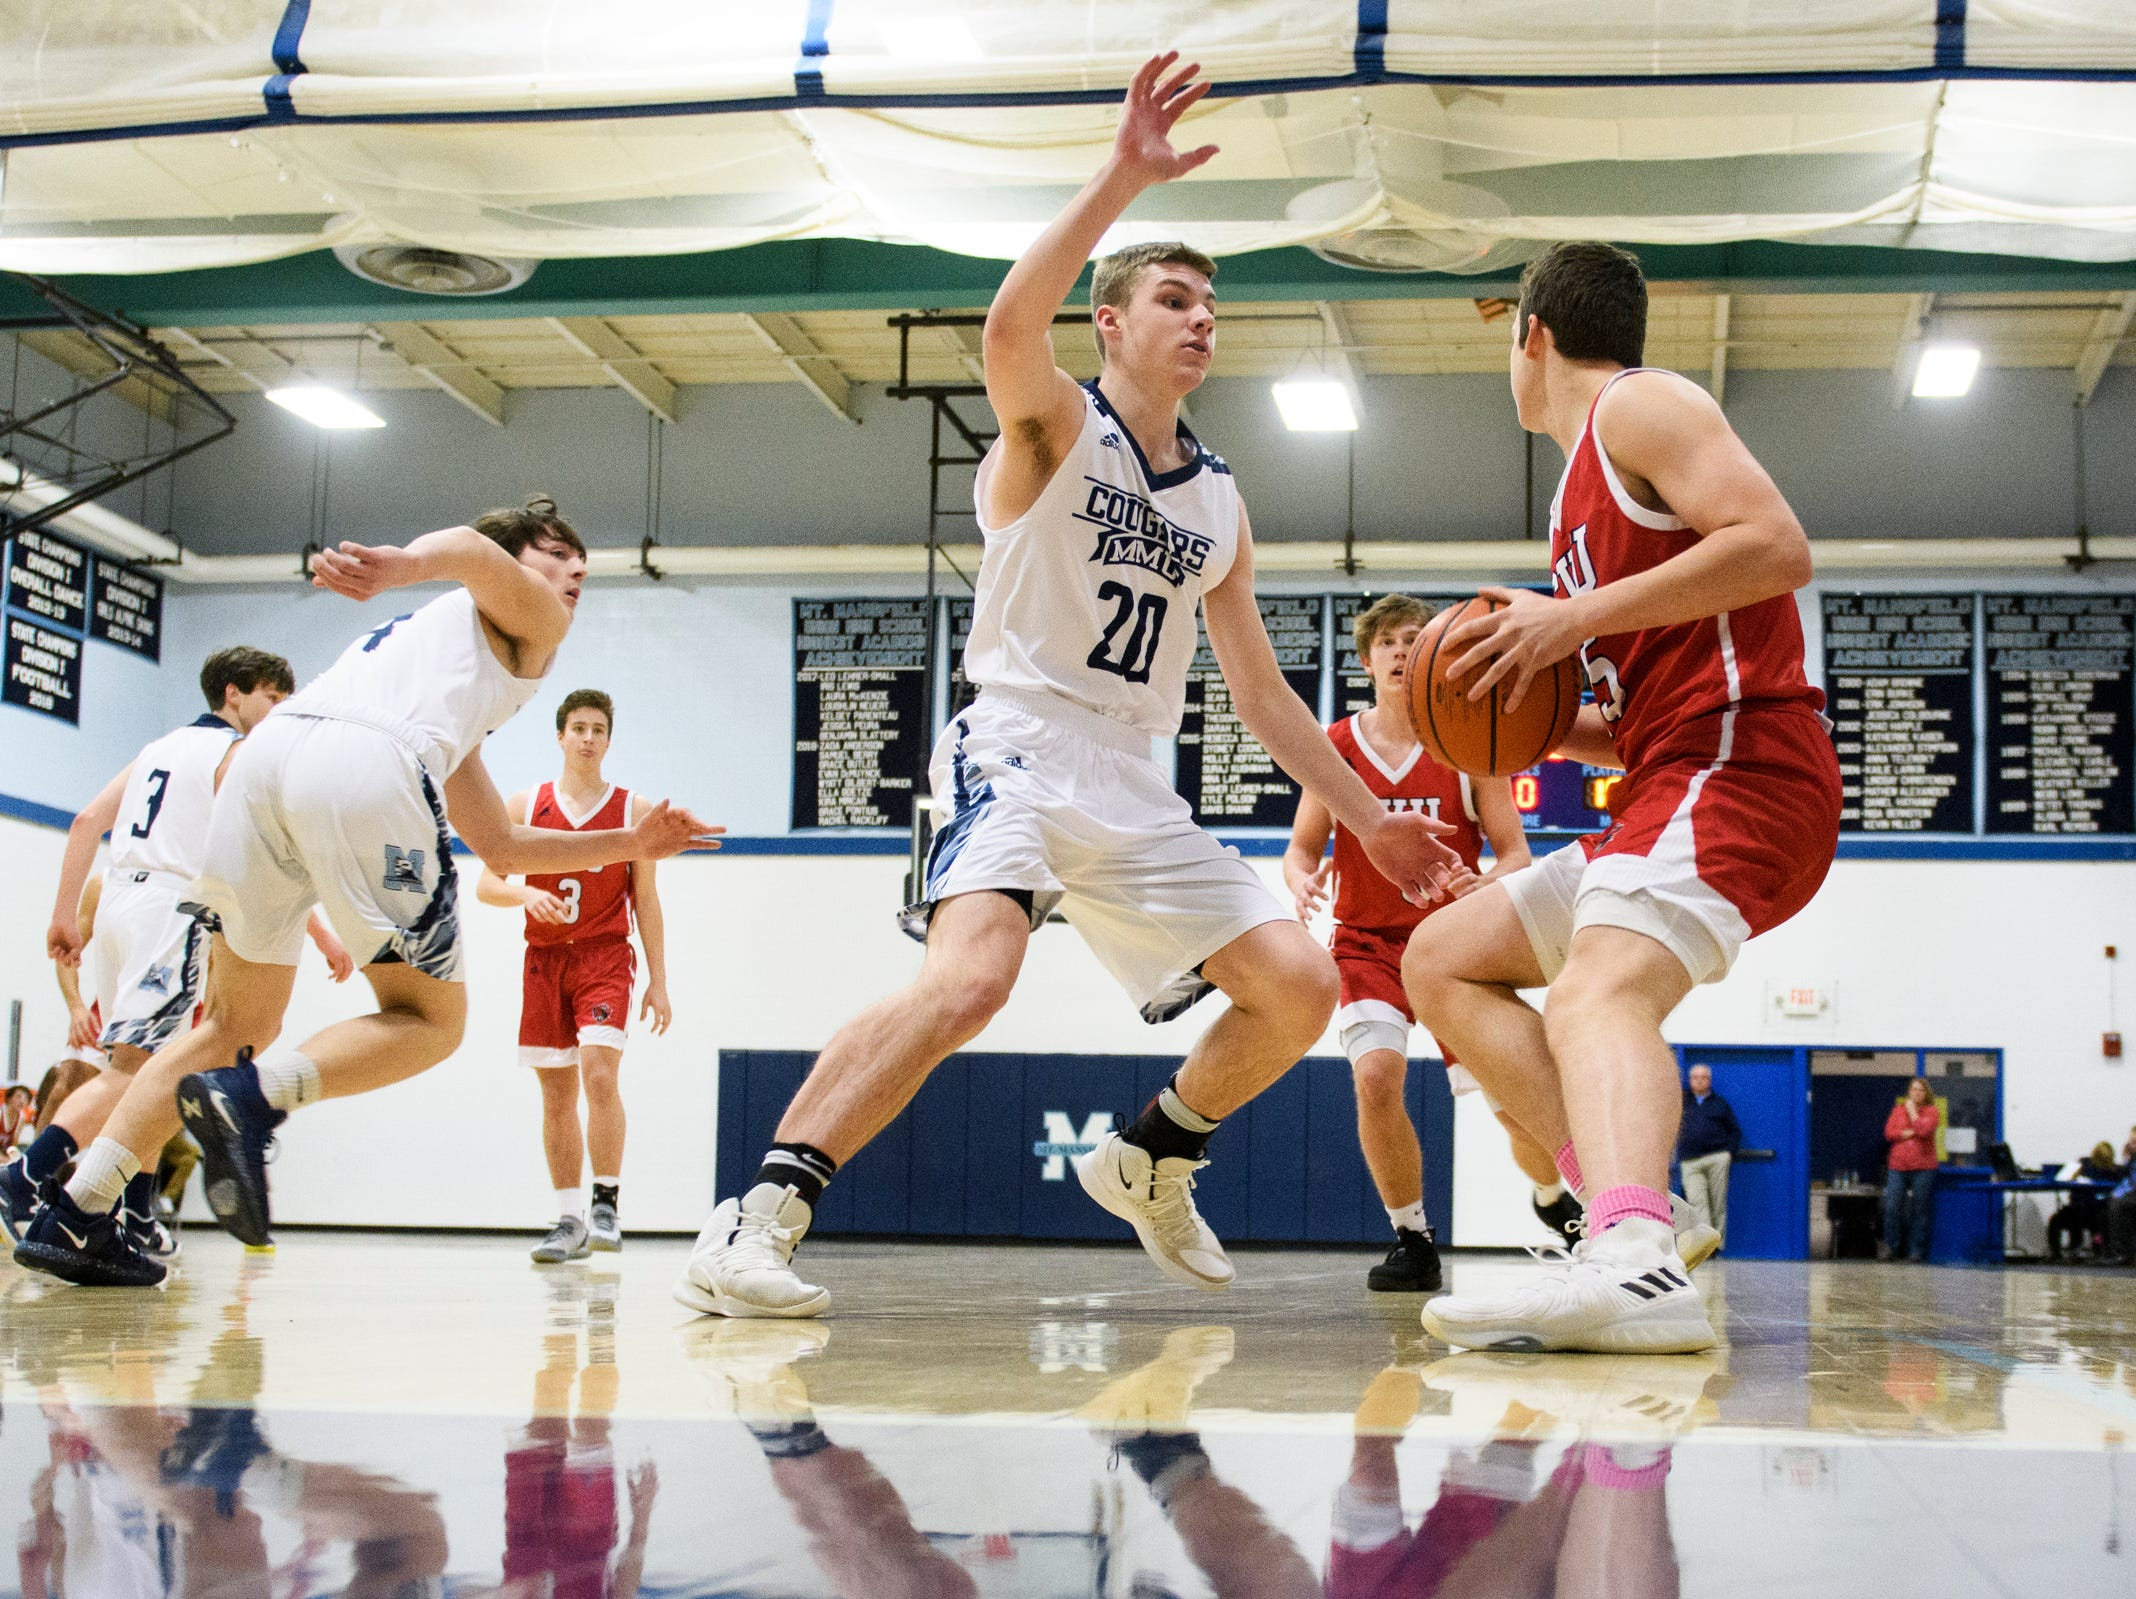 MMU's Connor Philbrick (20) tries to guard CVU's Bennett Cheer (15) during the boys basketball game between the Champlain Valley Union Redhawks and the Mount Mansfield Cougars at MMU High School on Tuesday night January 22, 2019 in Jericho.